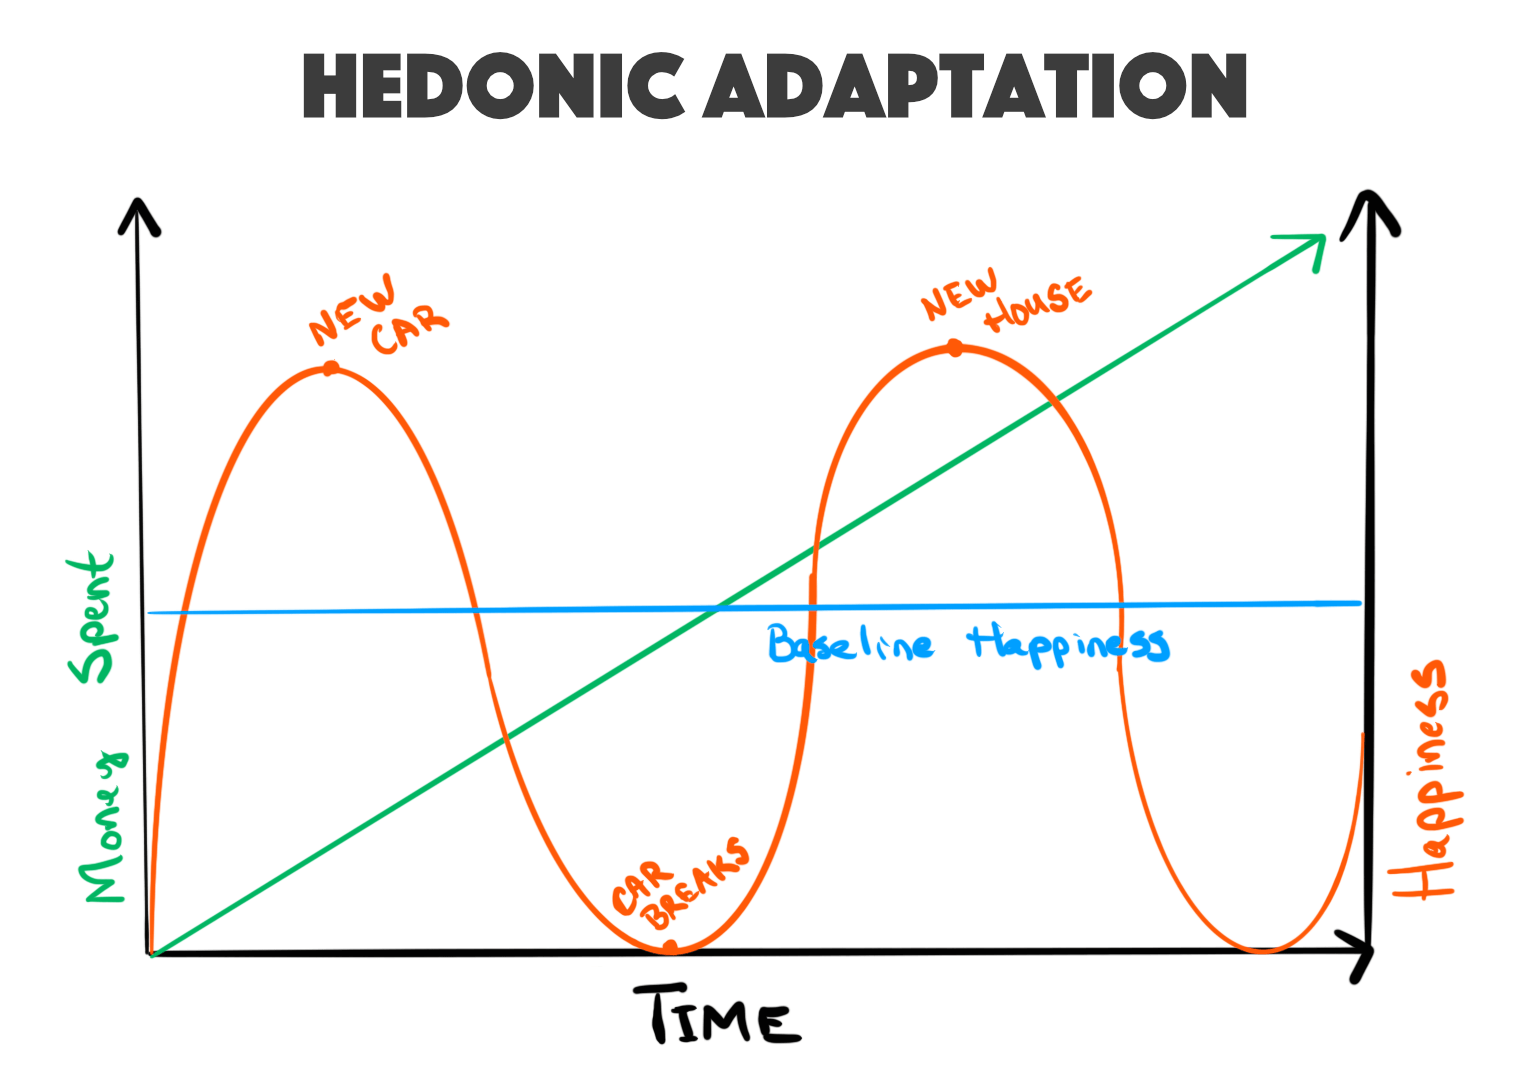 Hedonic adaptation in action: this graph shows how over time you tend to revert to your baseline happiness but require ever-increasing amounts of spending to reach new happiness peaks.